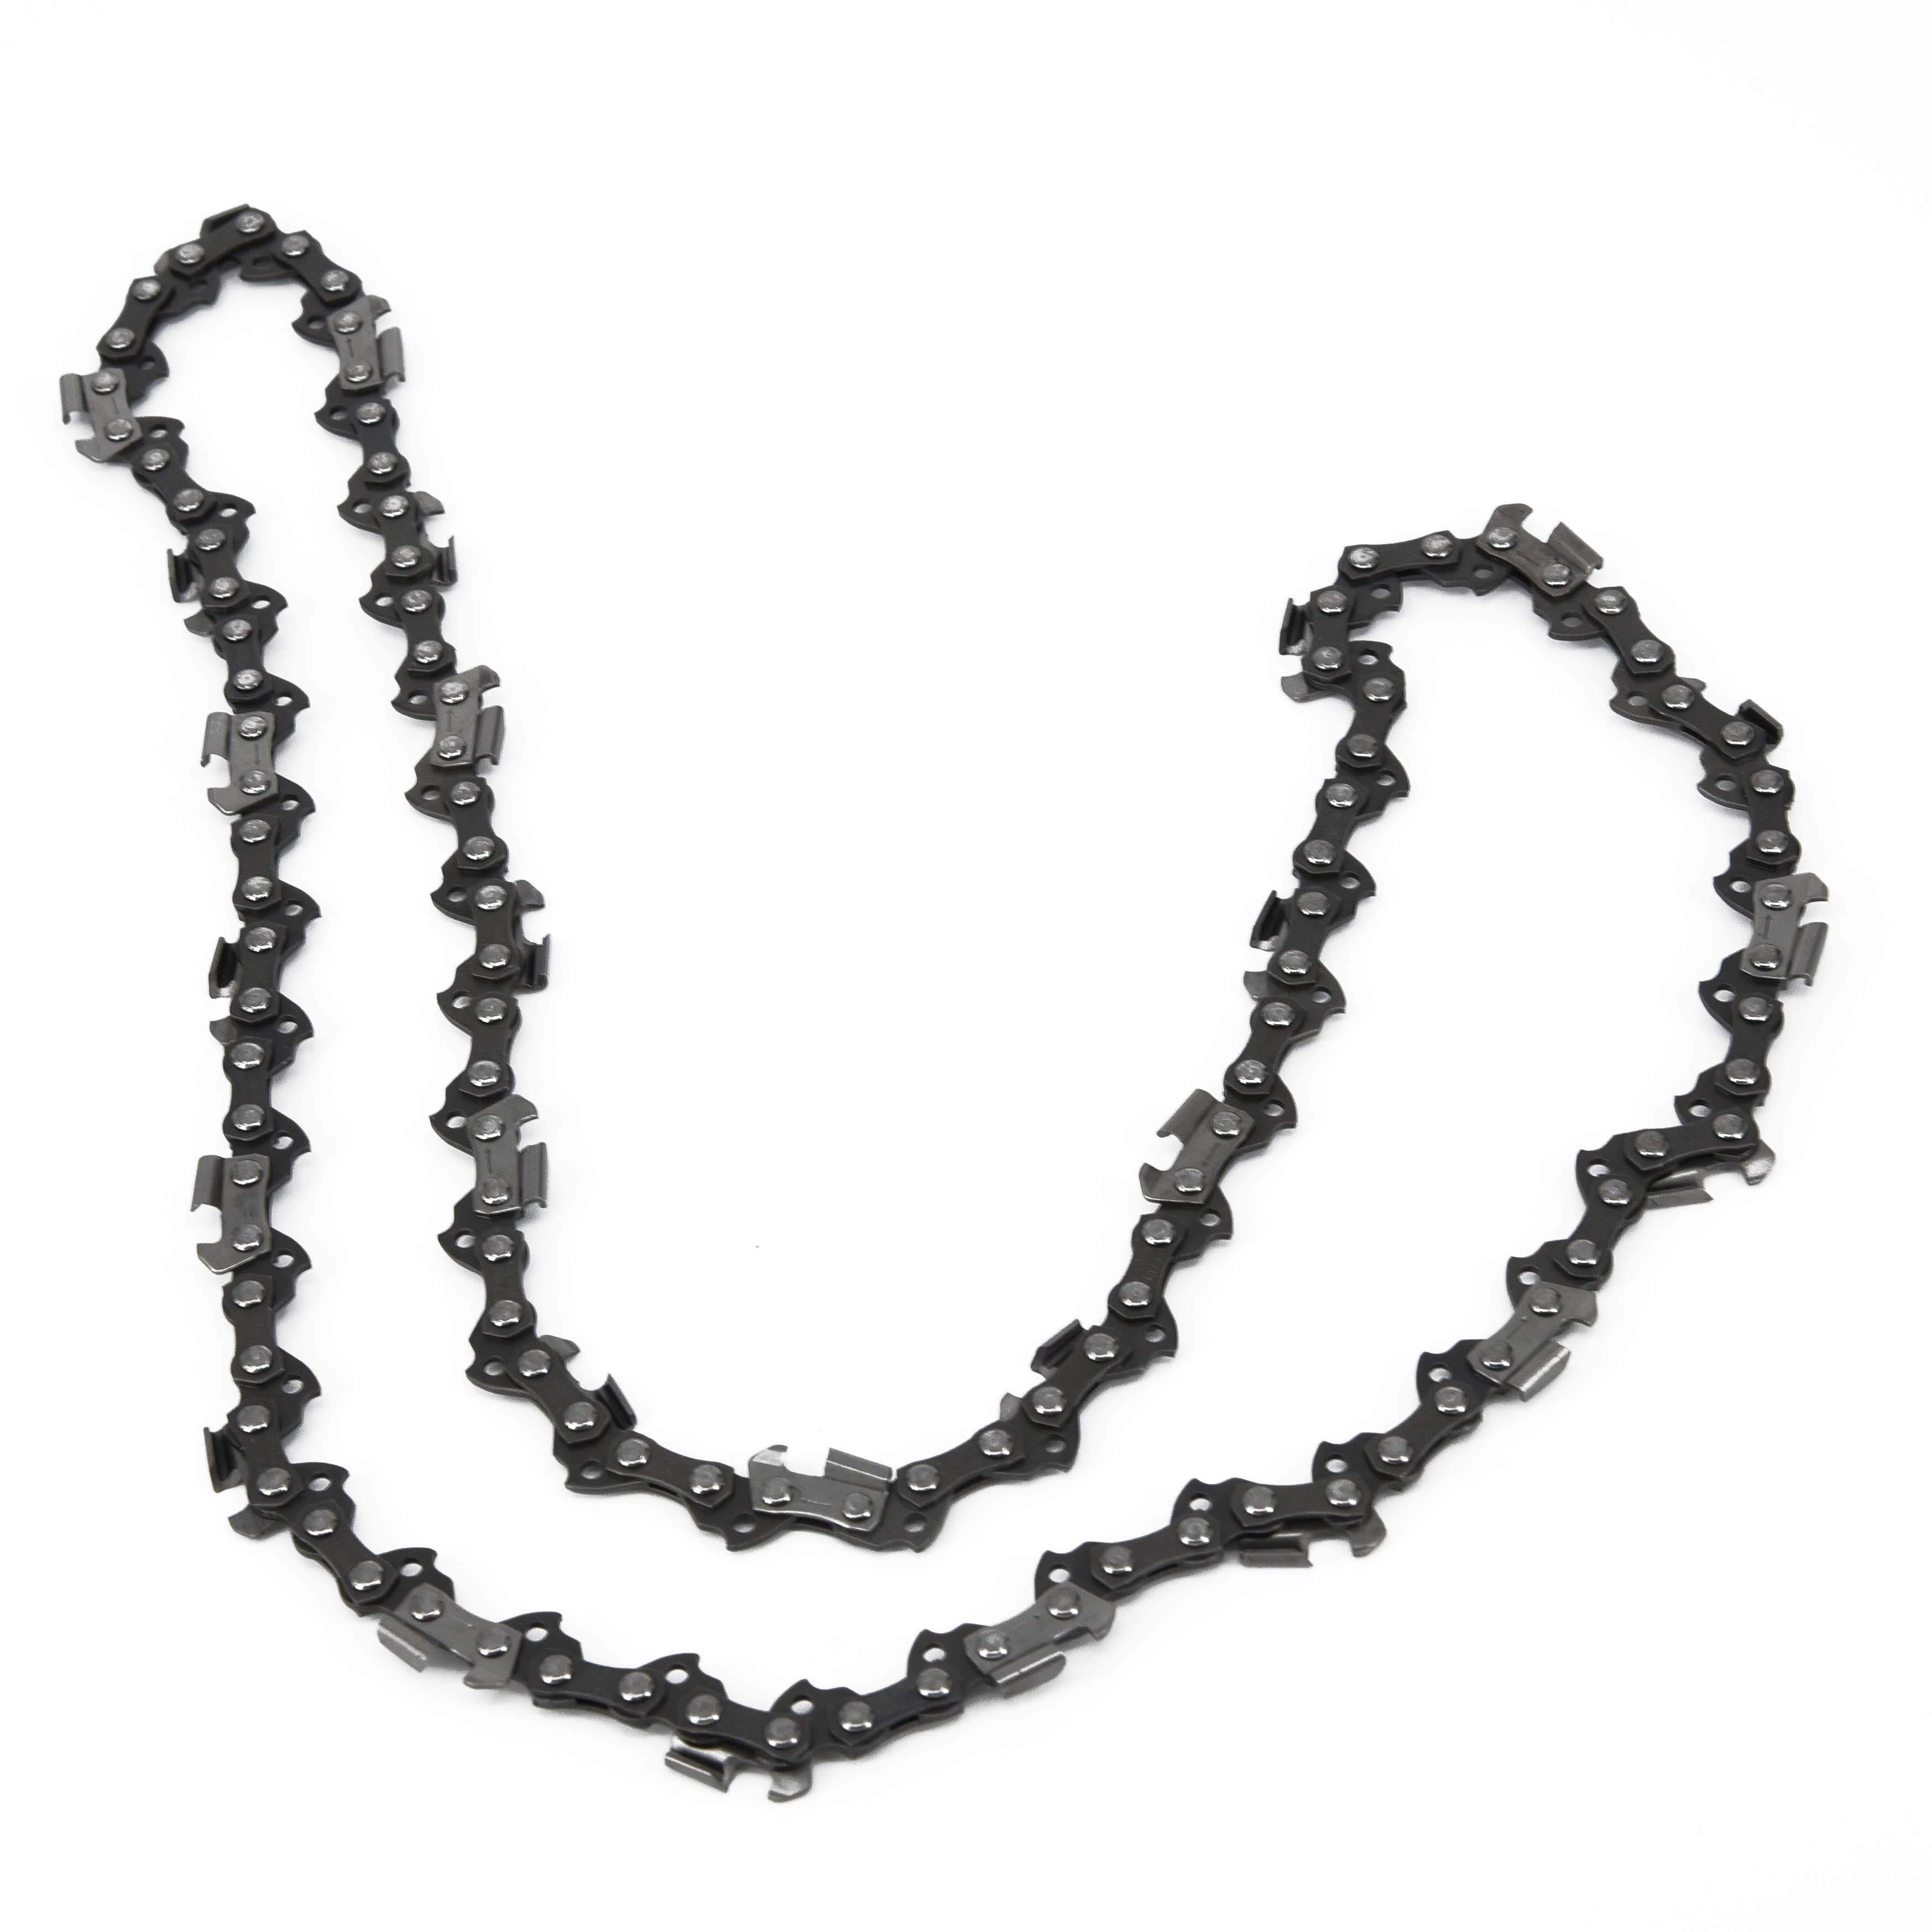 Semi Chisel Chainsaw Chain For Stihl 009 MS190T MS191 MS191T MS192 MS192T MS200